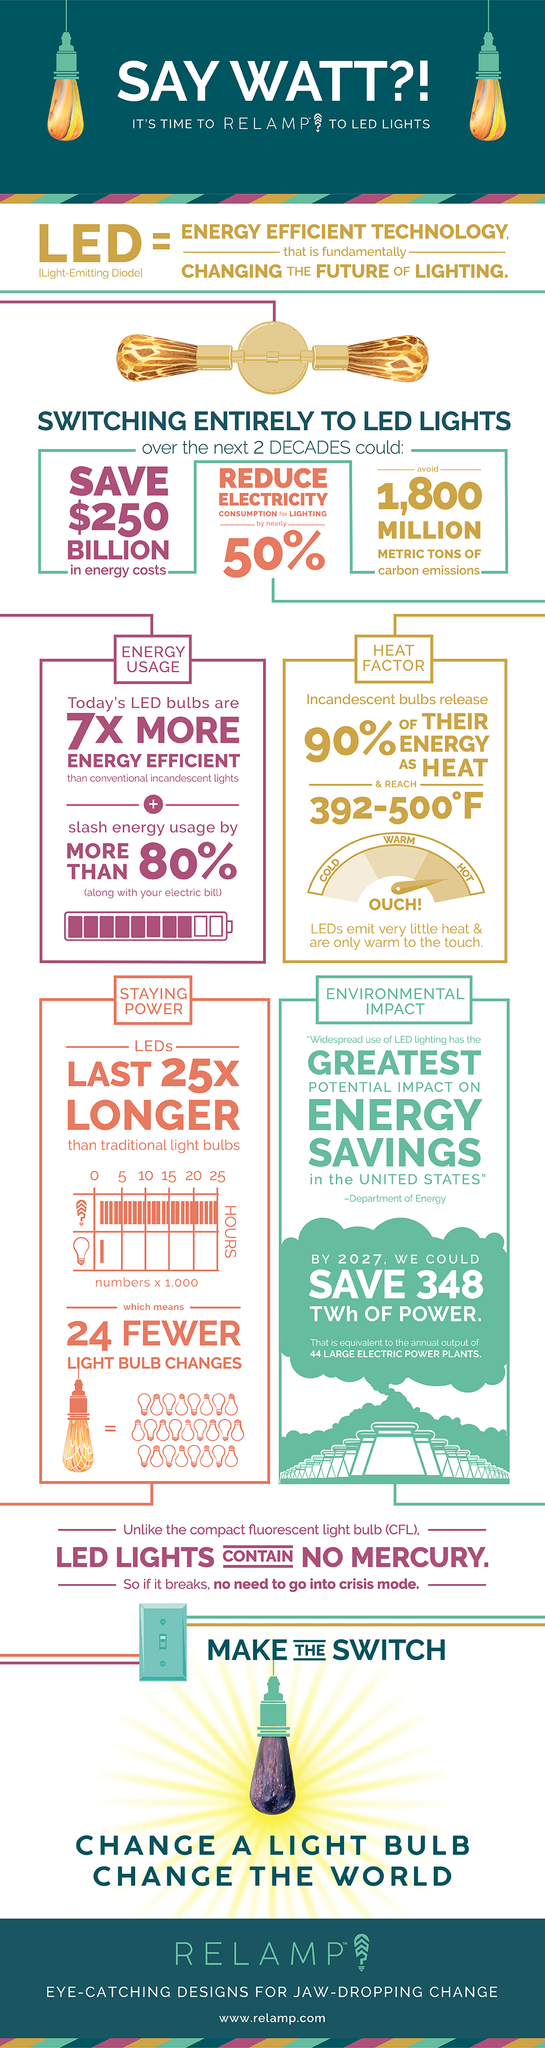 Reduce energy usage and positively impact the environment by switching to energy efficient LED light bulbs